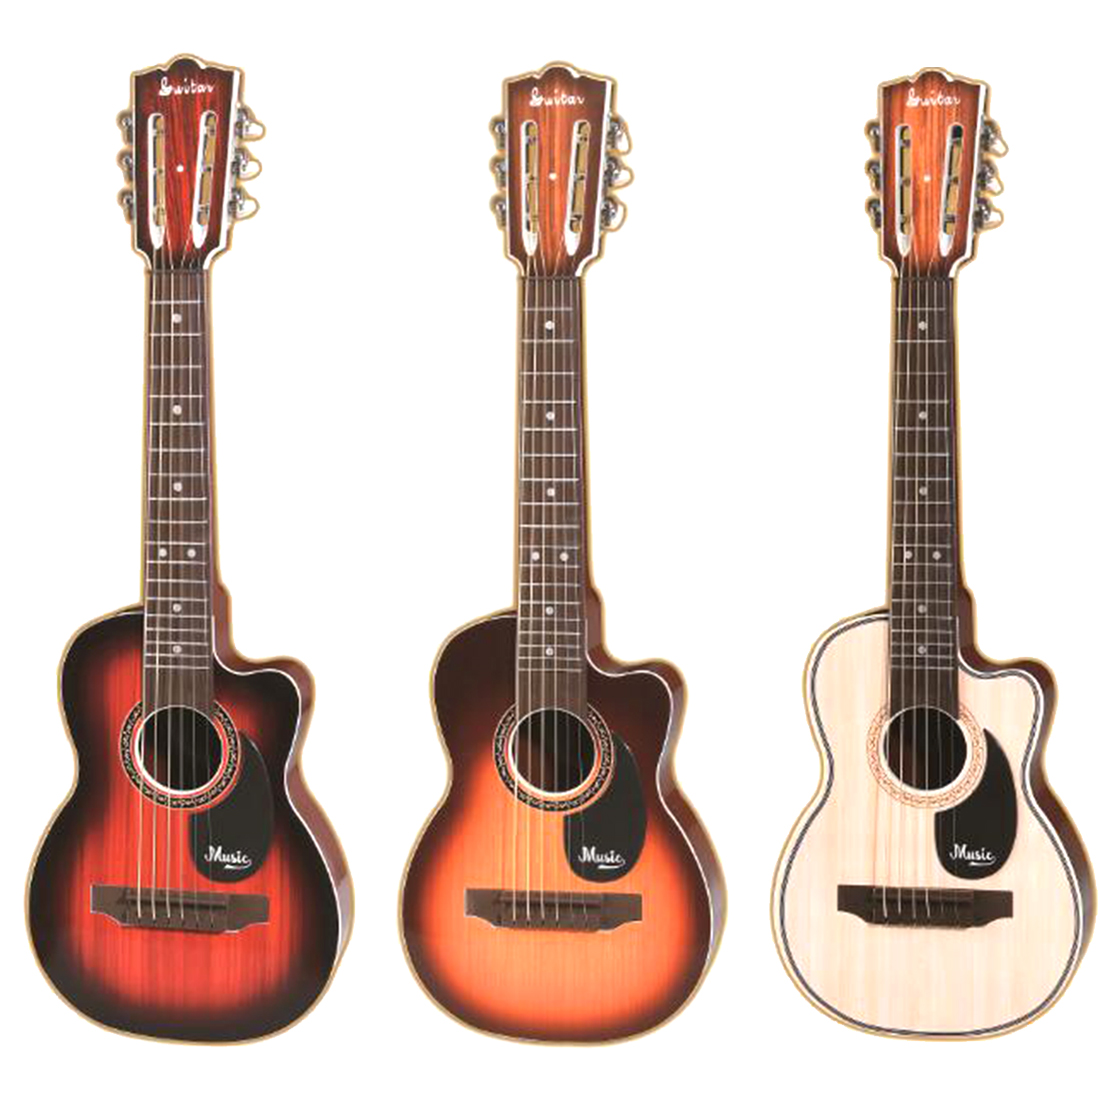 knowneer 6 Strings Children Kids Musical Plastic Guitar Toys Educational Instrument Gift Music Learning Practice